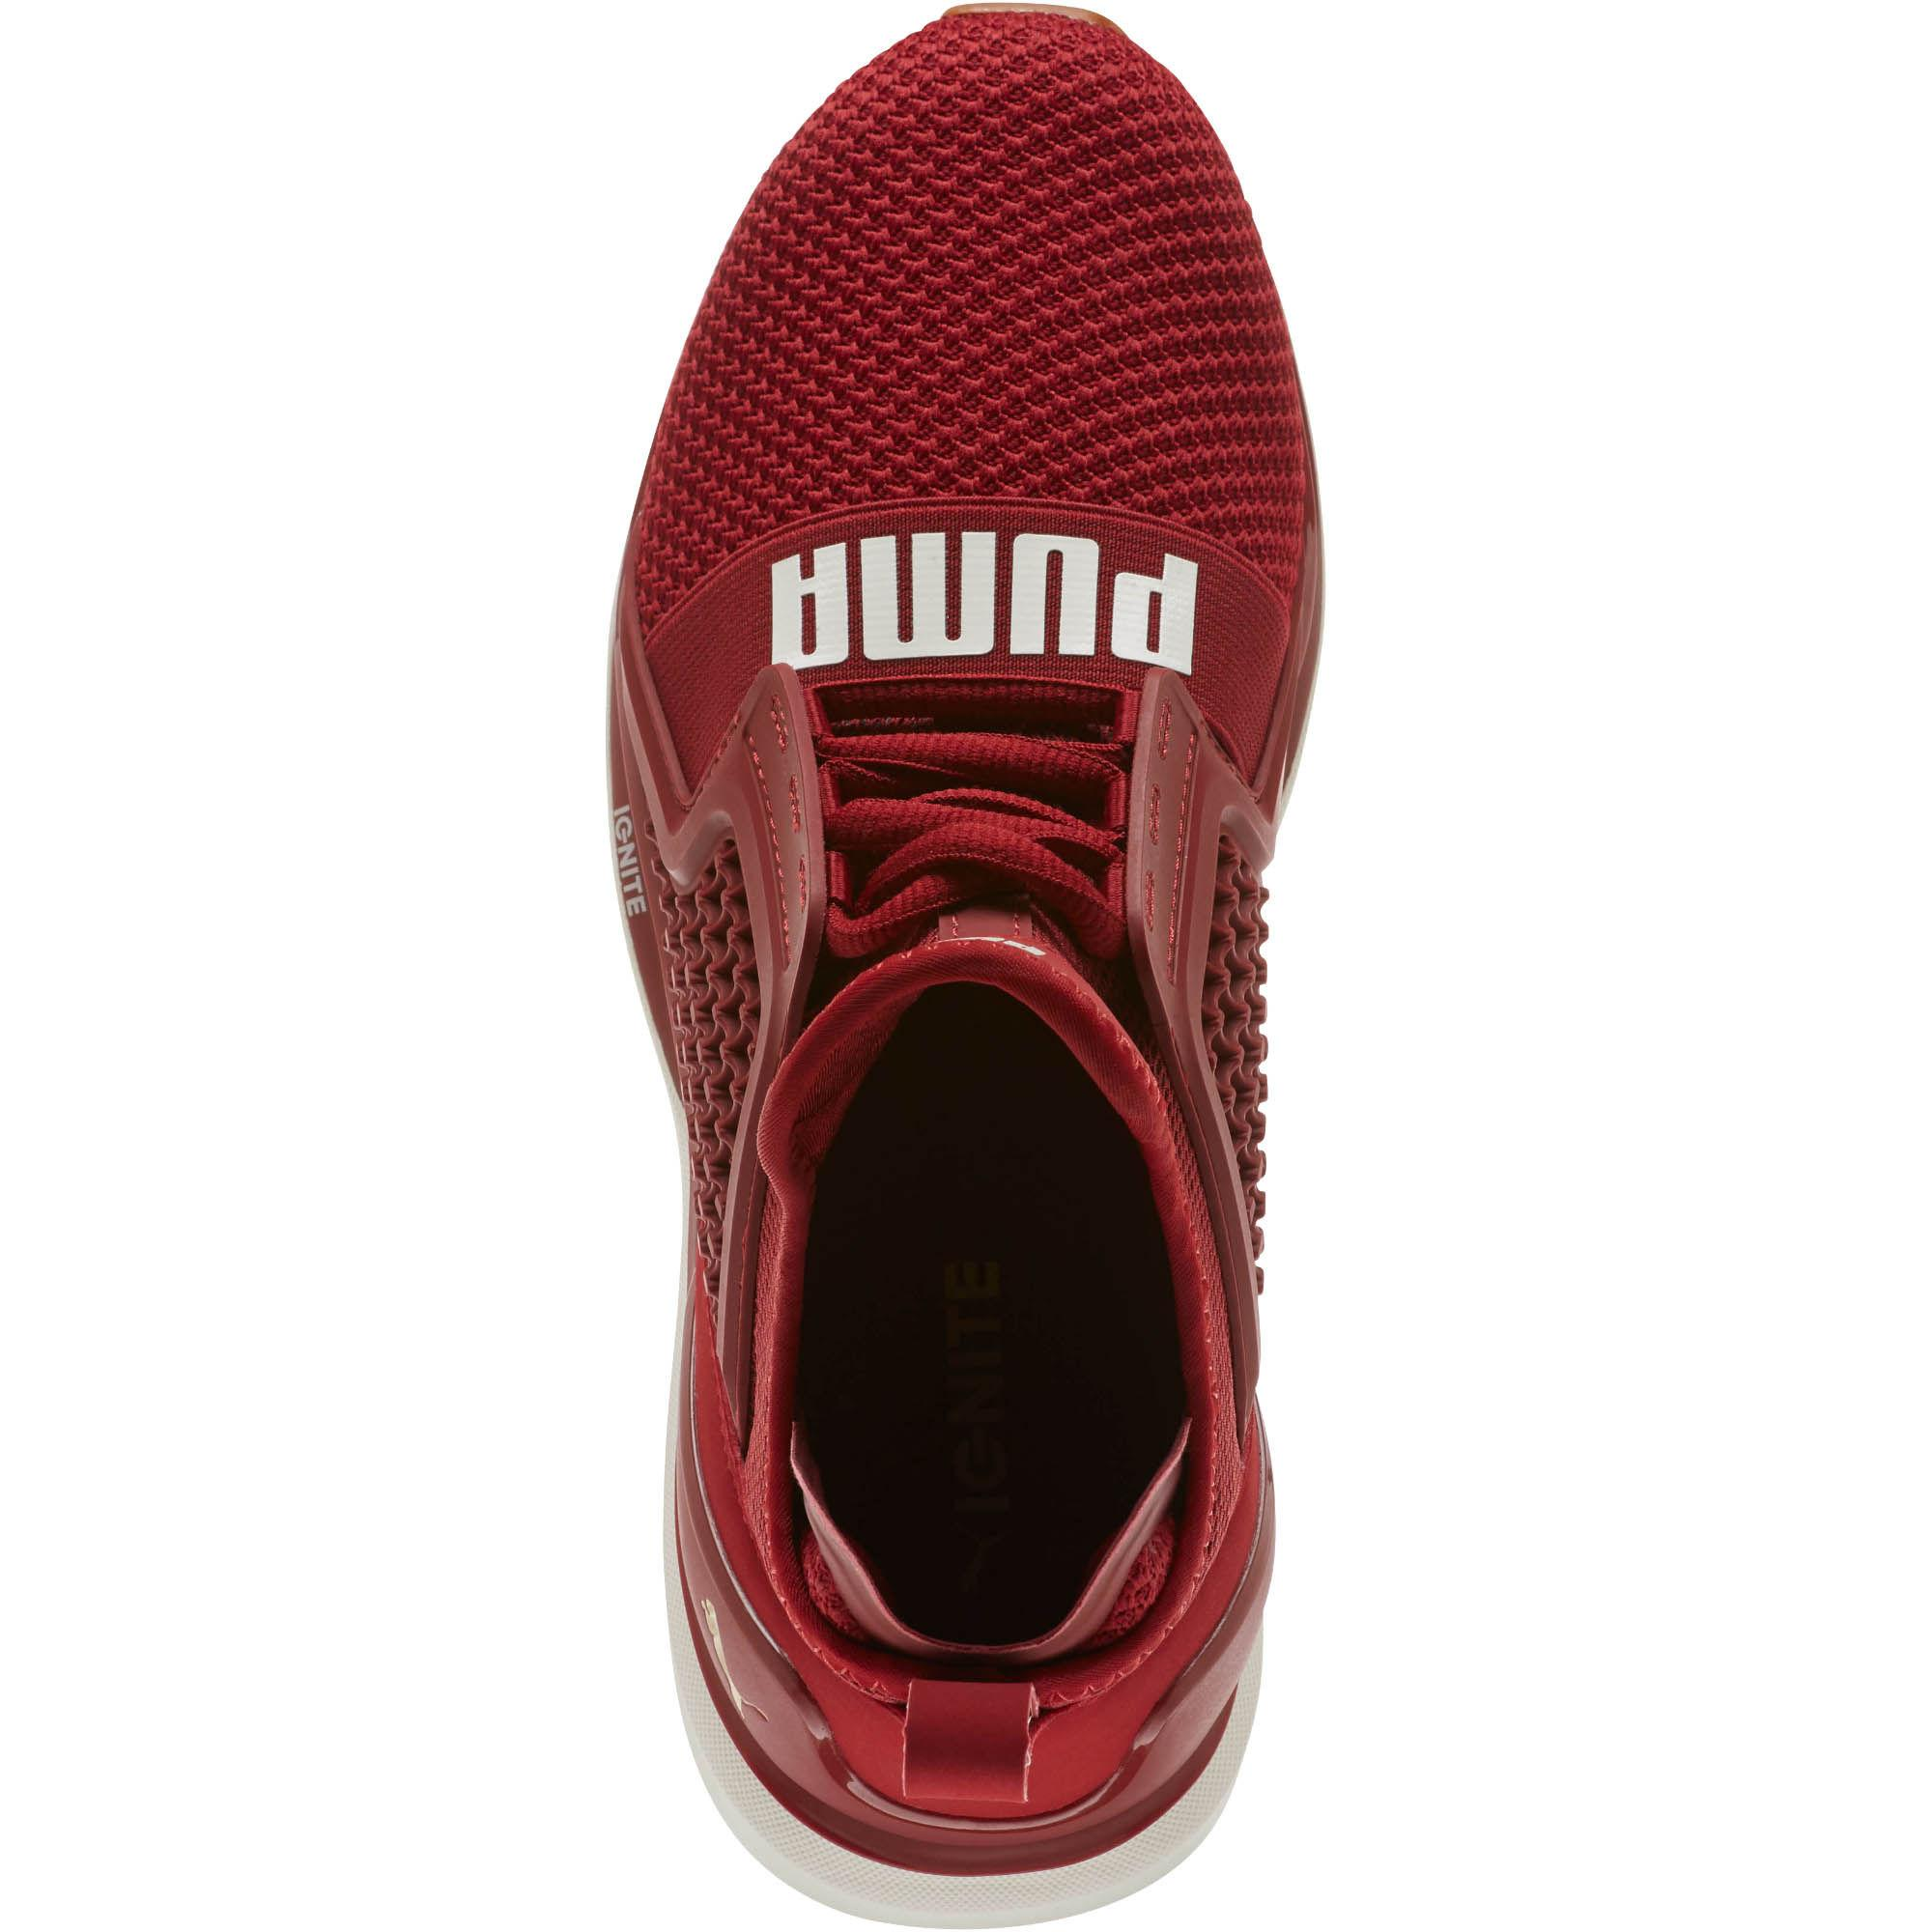 new style 9ade1 92a1e PUMA Red Ignite Limitless Weave Women's Running Shoes